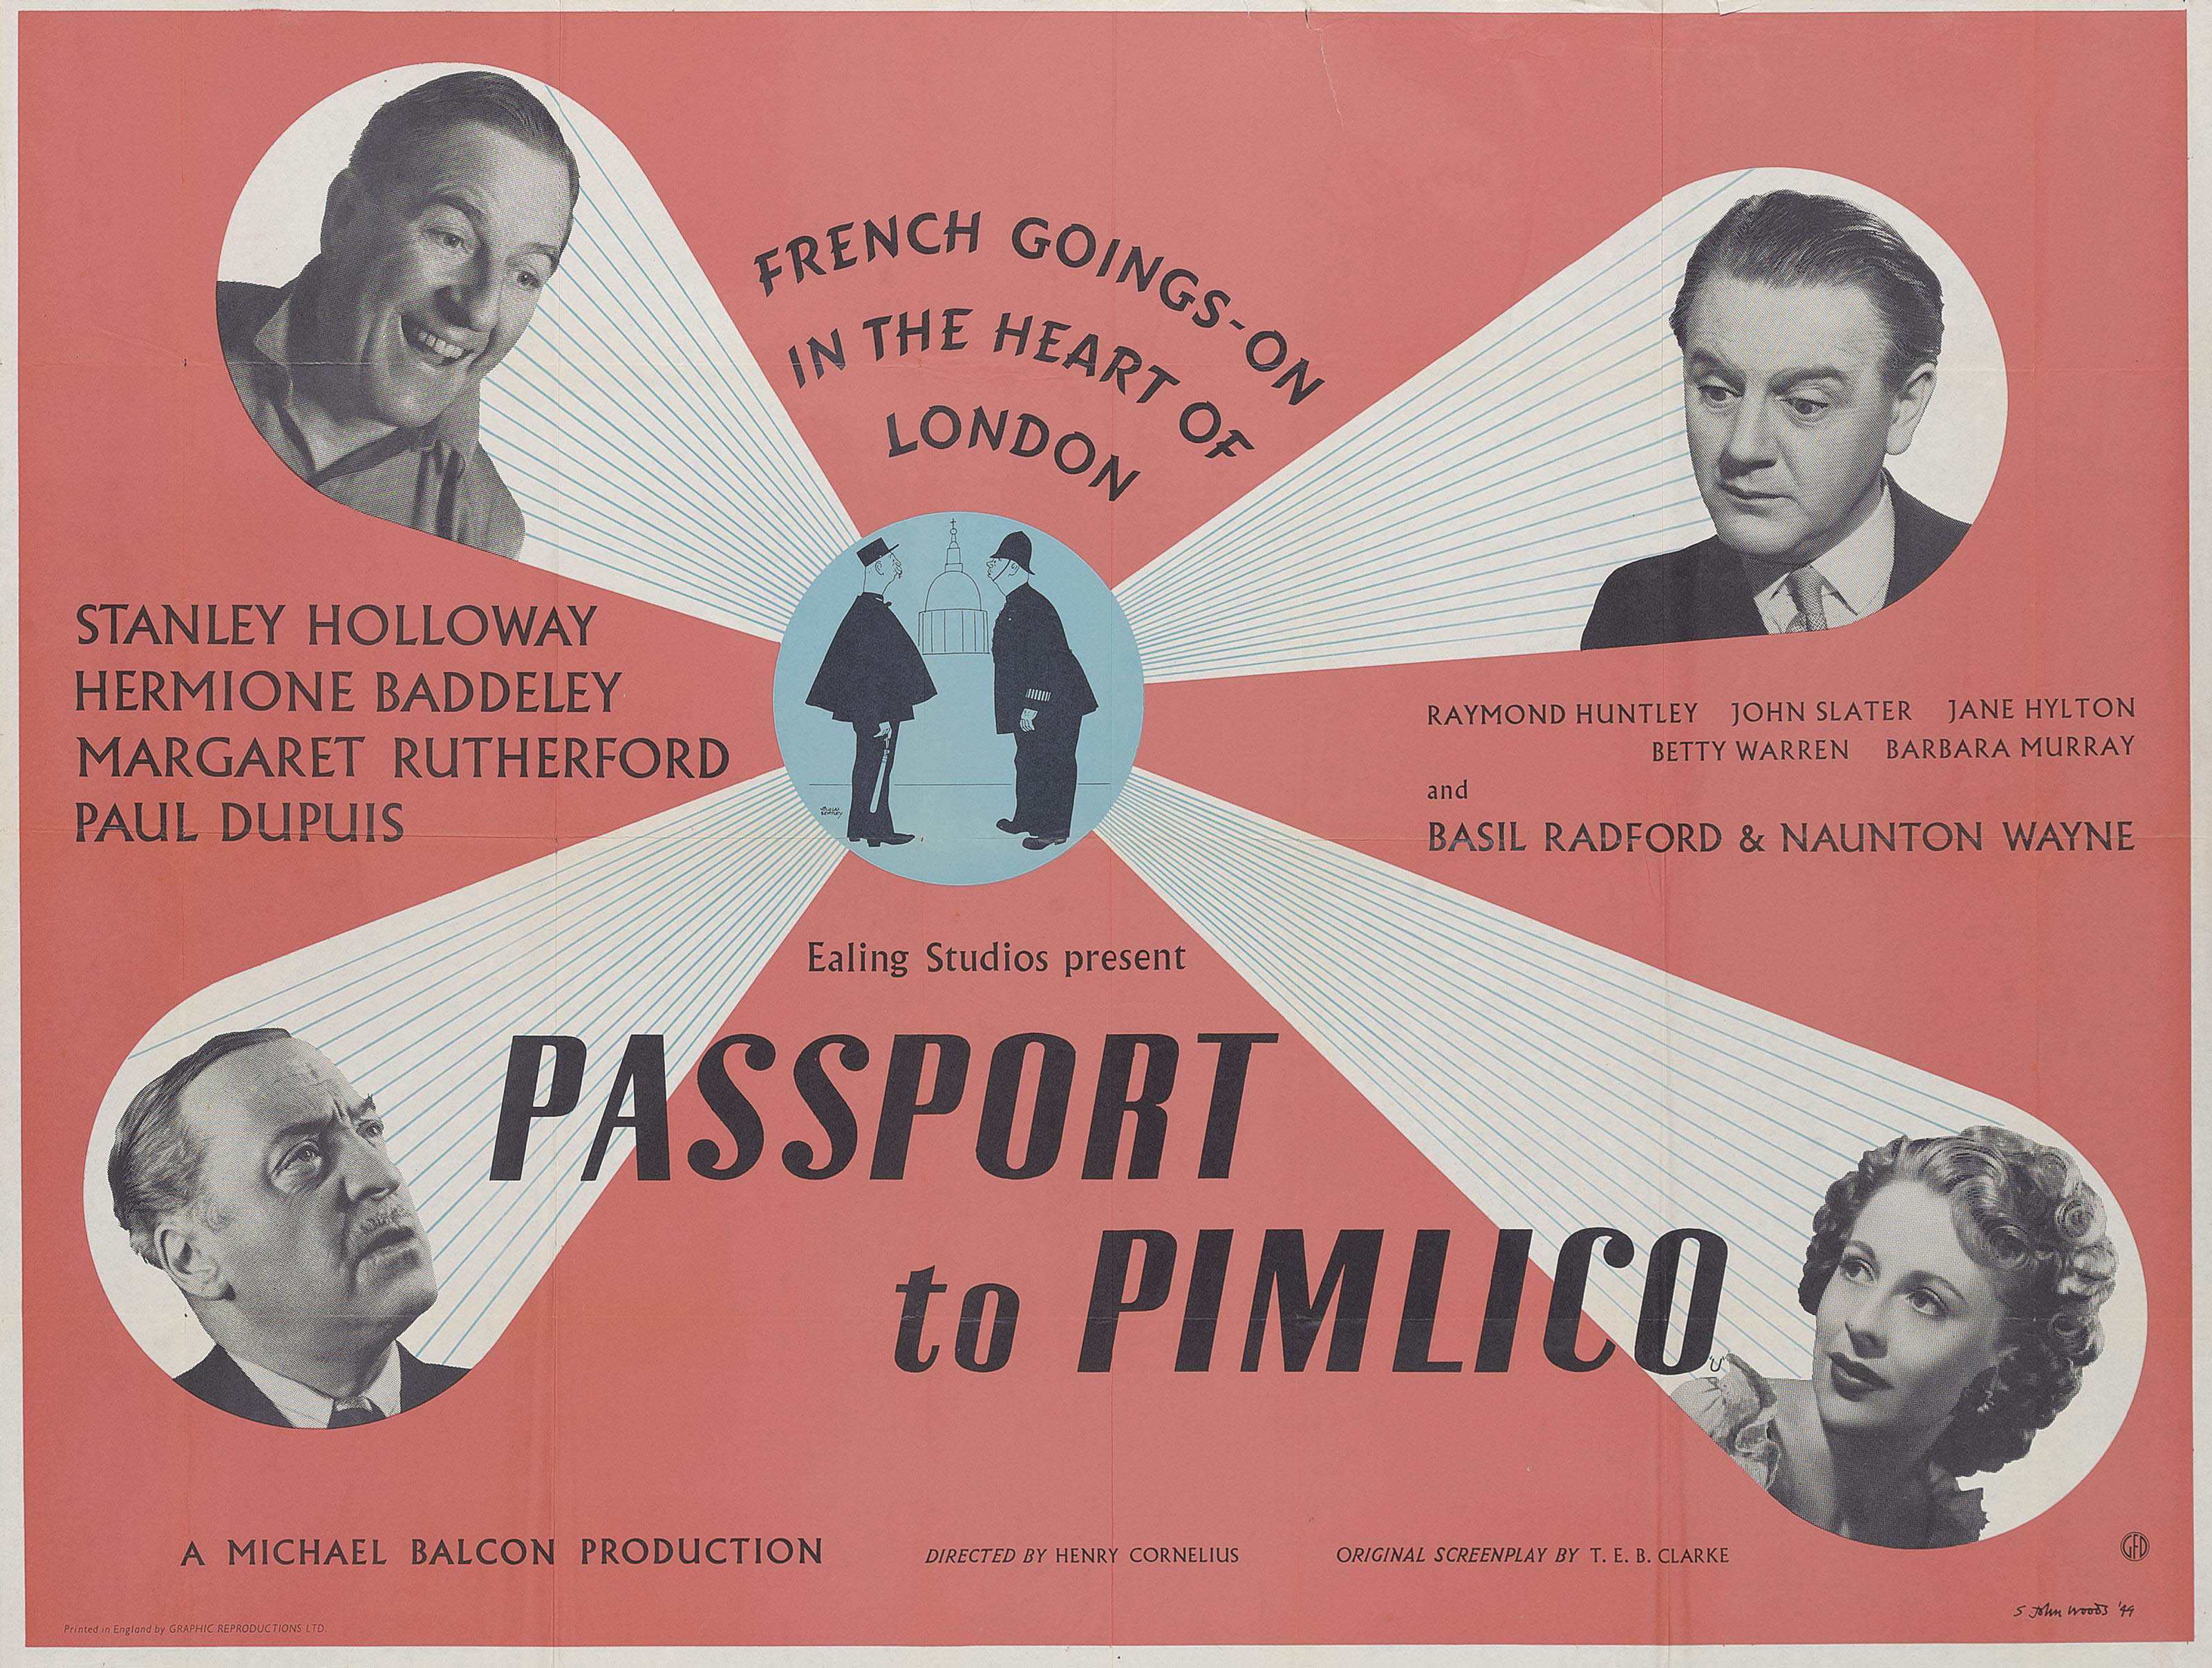 Passport To Pimlico | Posters, Signage & Advertising, posters ...